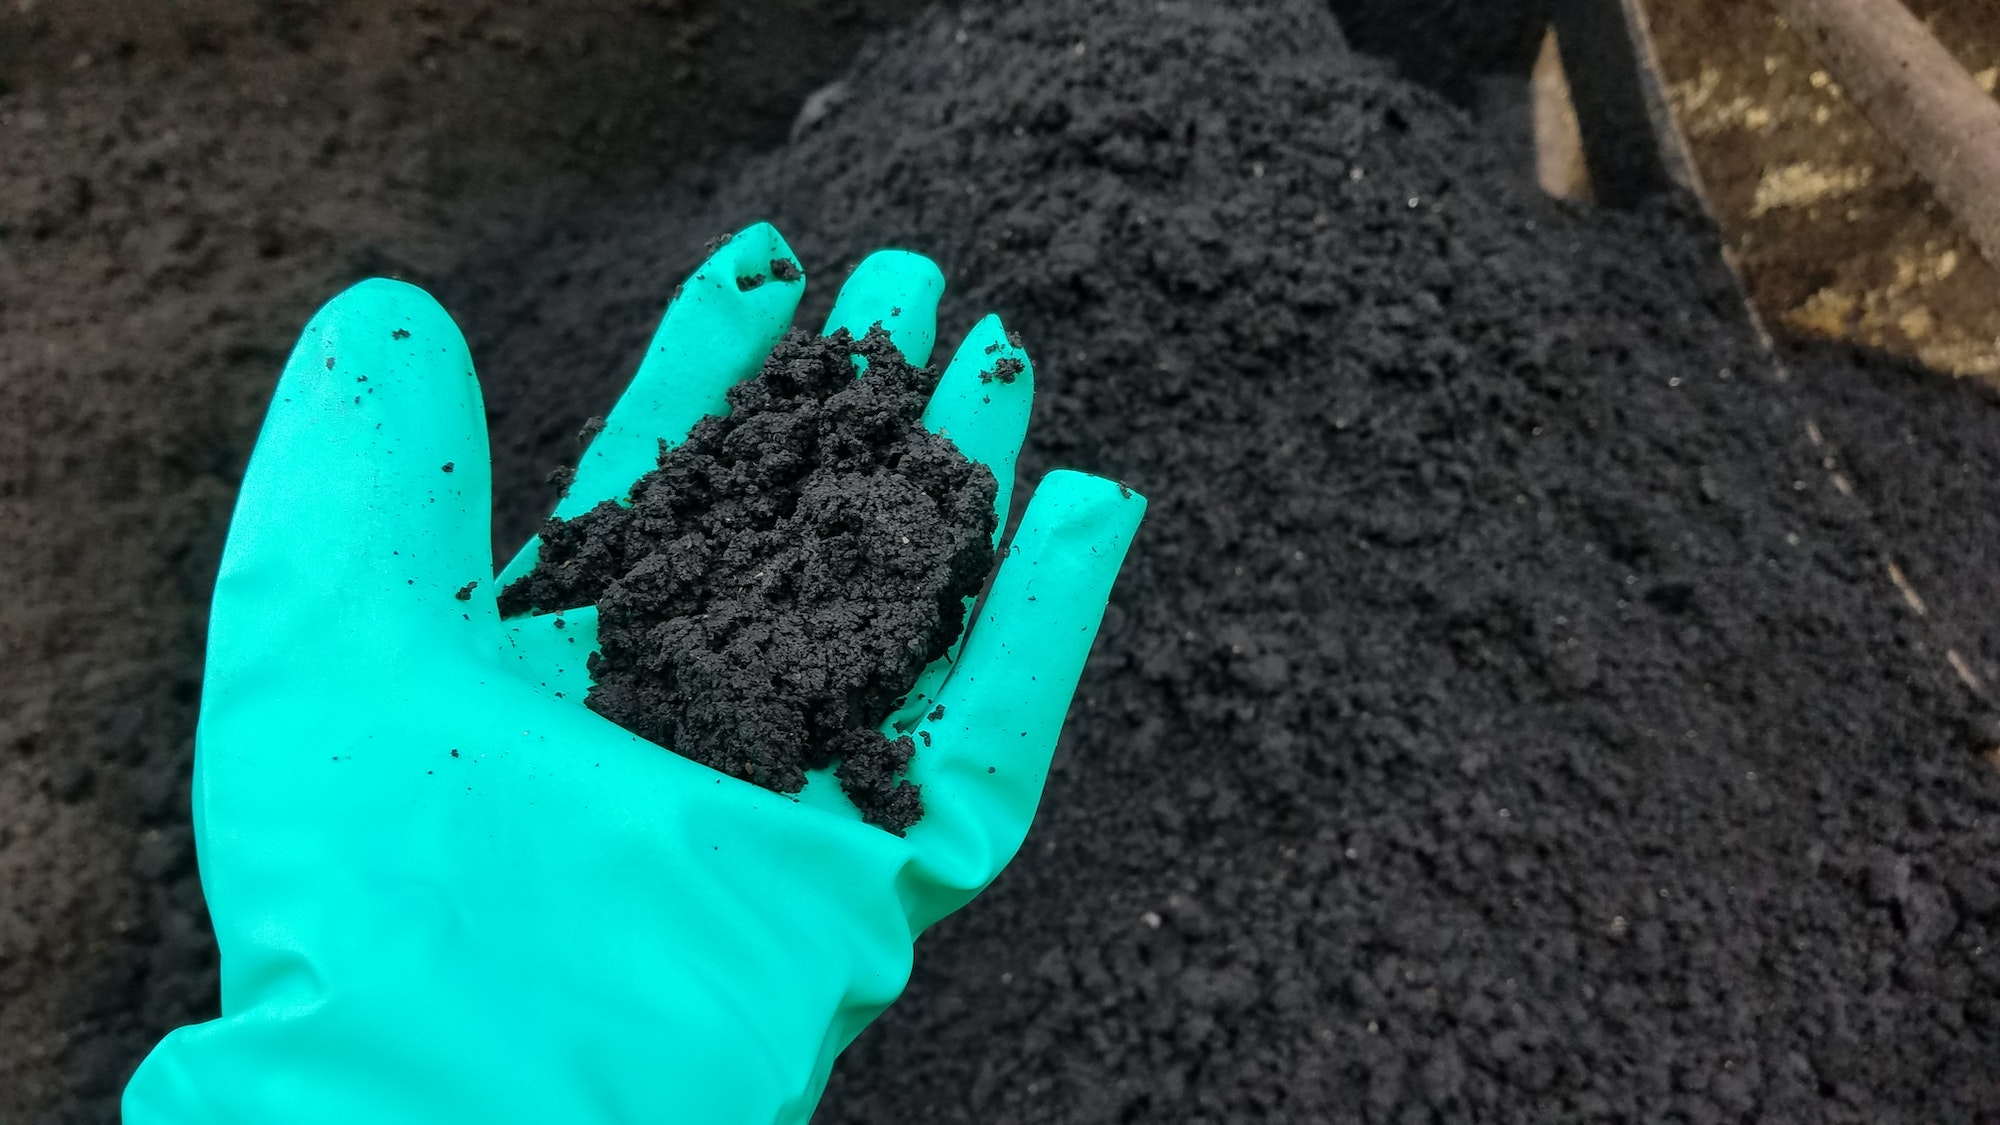 Gloved hand holding biosolids. Biosolids in background.